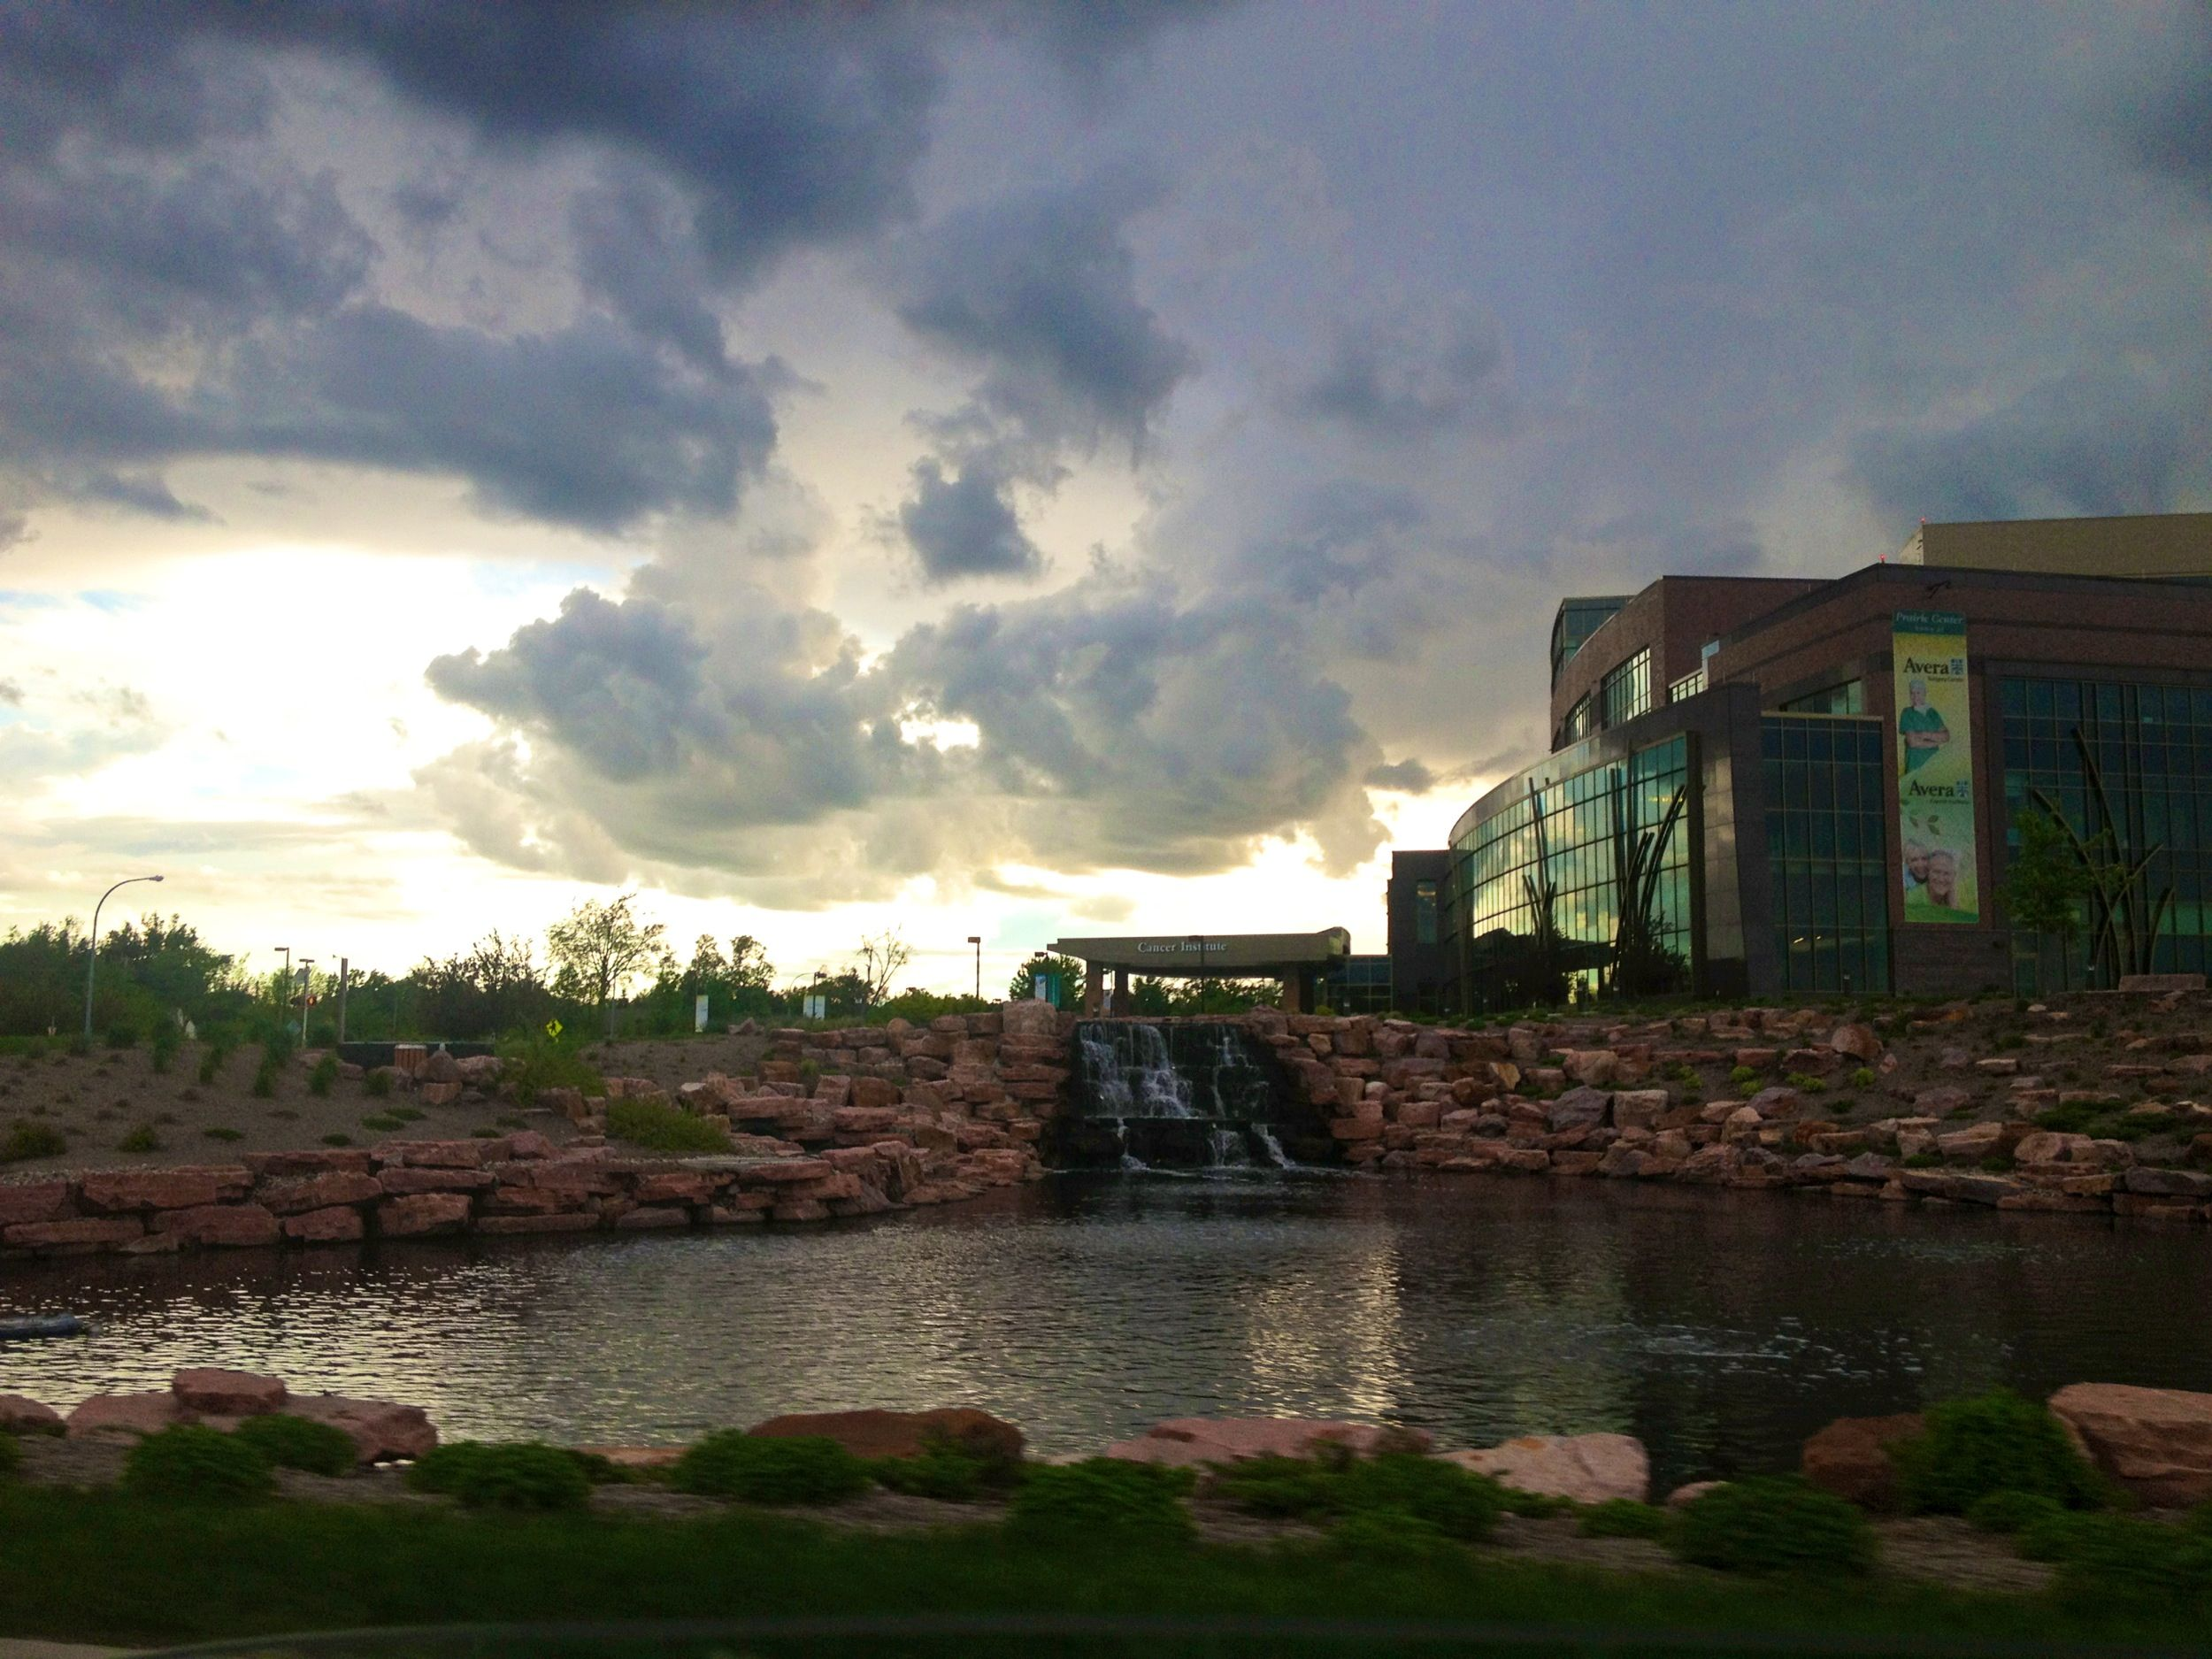 Sioux Falls, South Dakota. (Avera McKennan Hospital) This